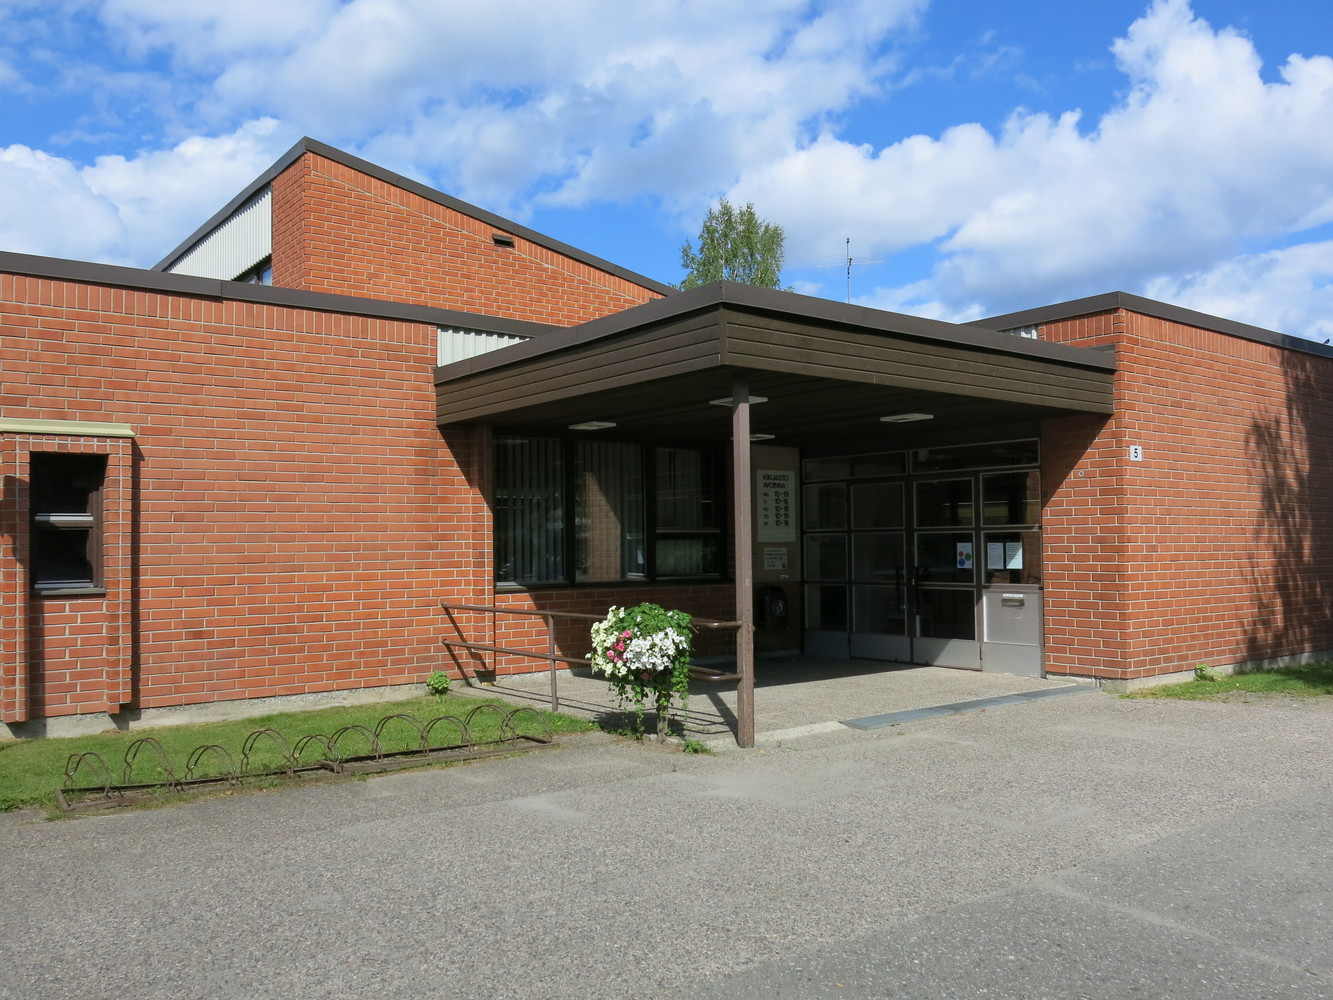 Nilsiä branch library